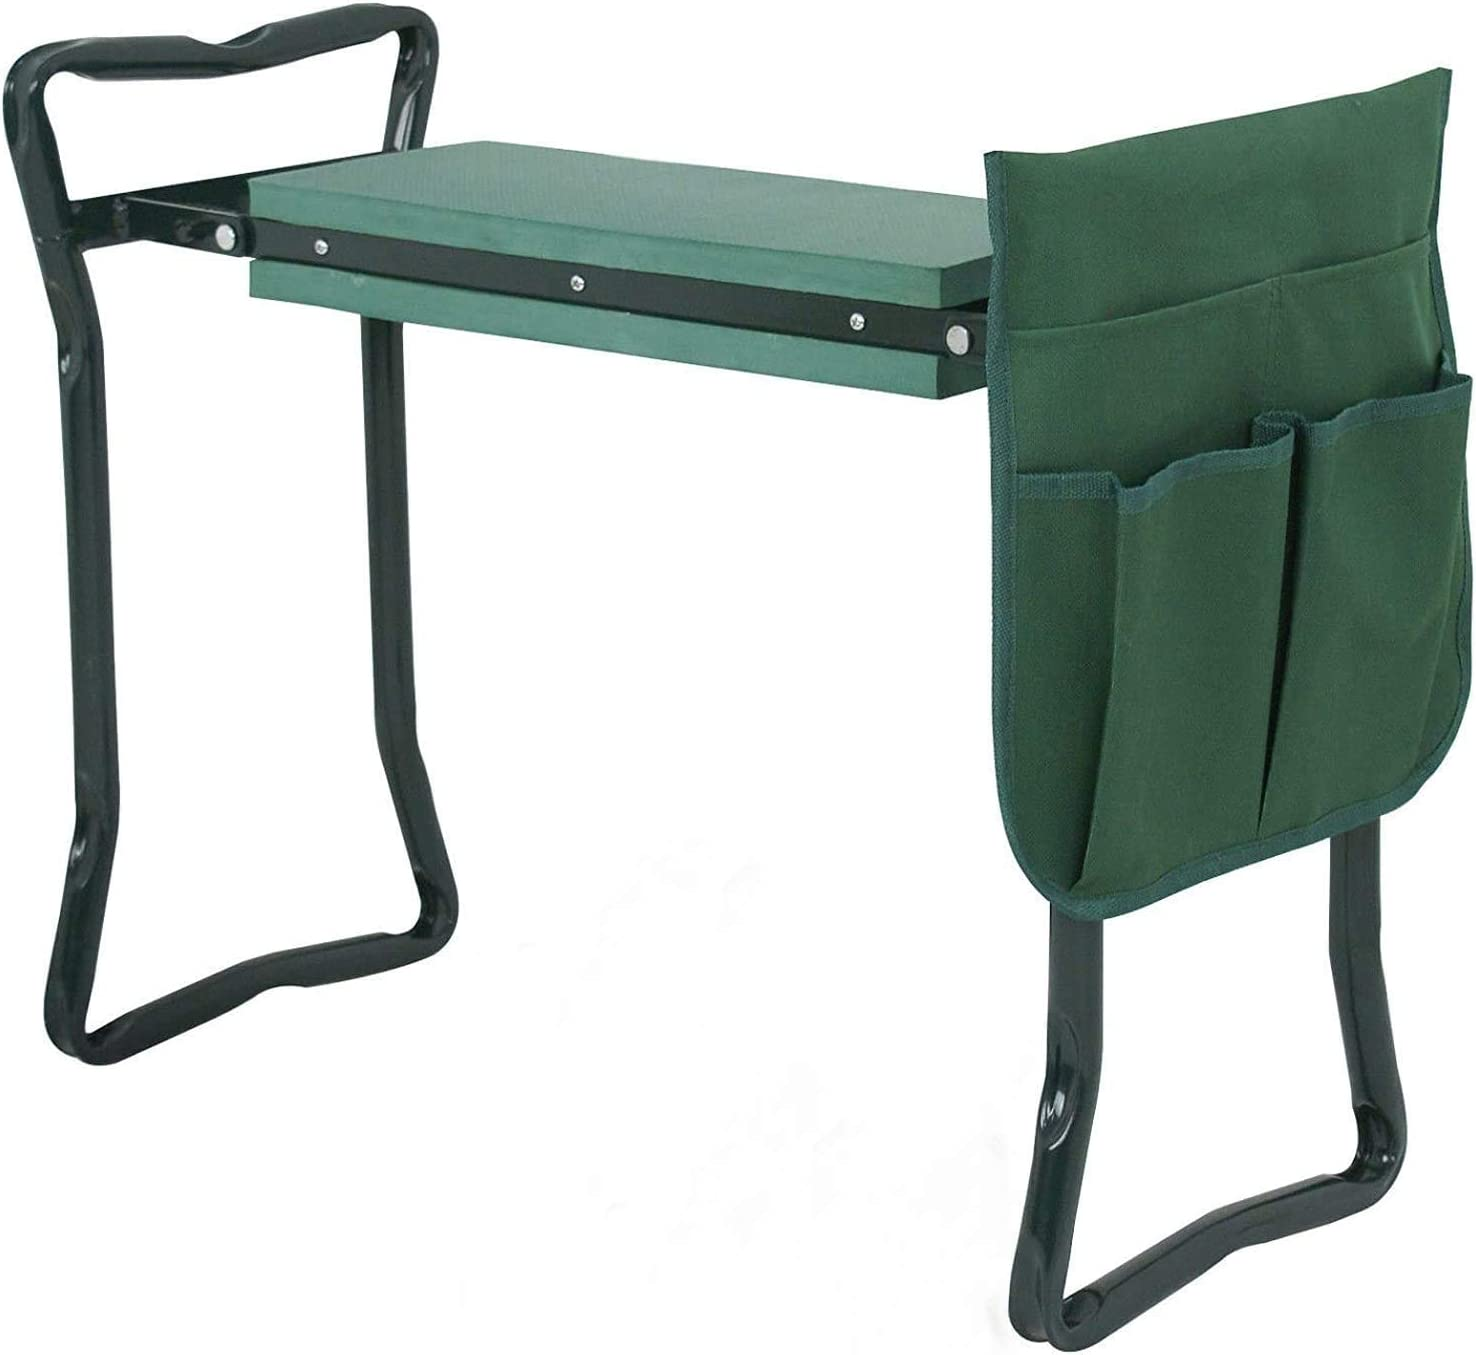 24 inch New color 250-lbs Foldable Kneeler Bench Stool Cushion Same day shipping Soft Garden